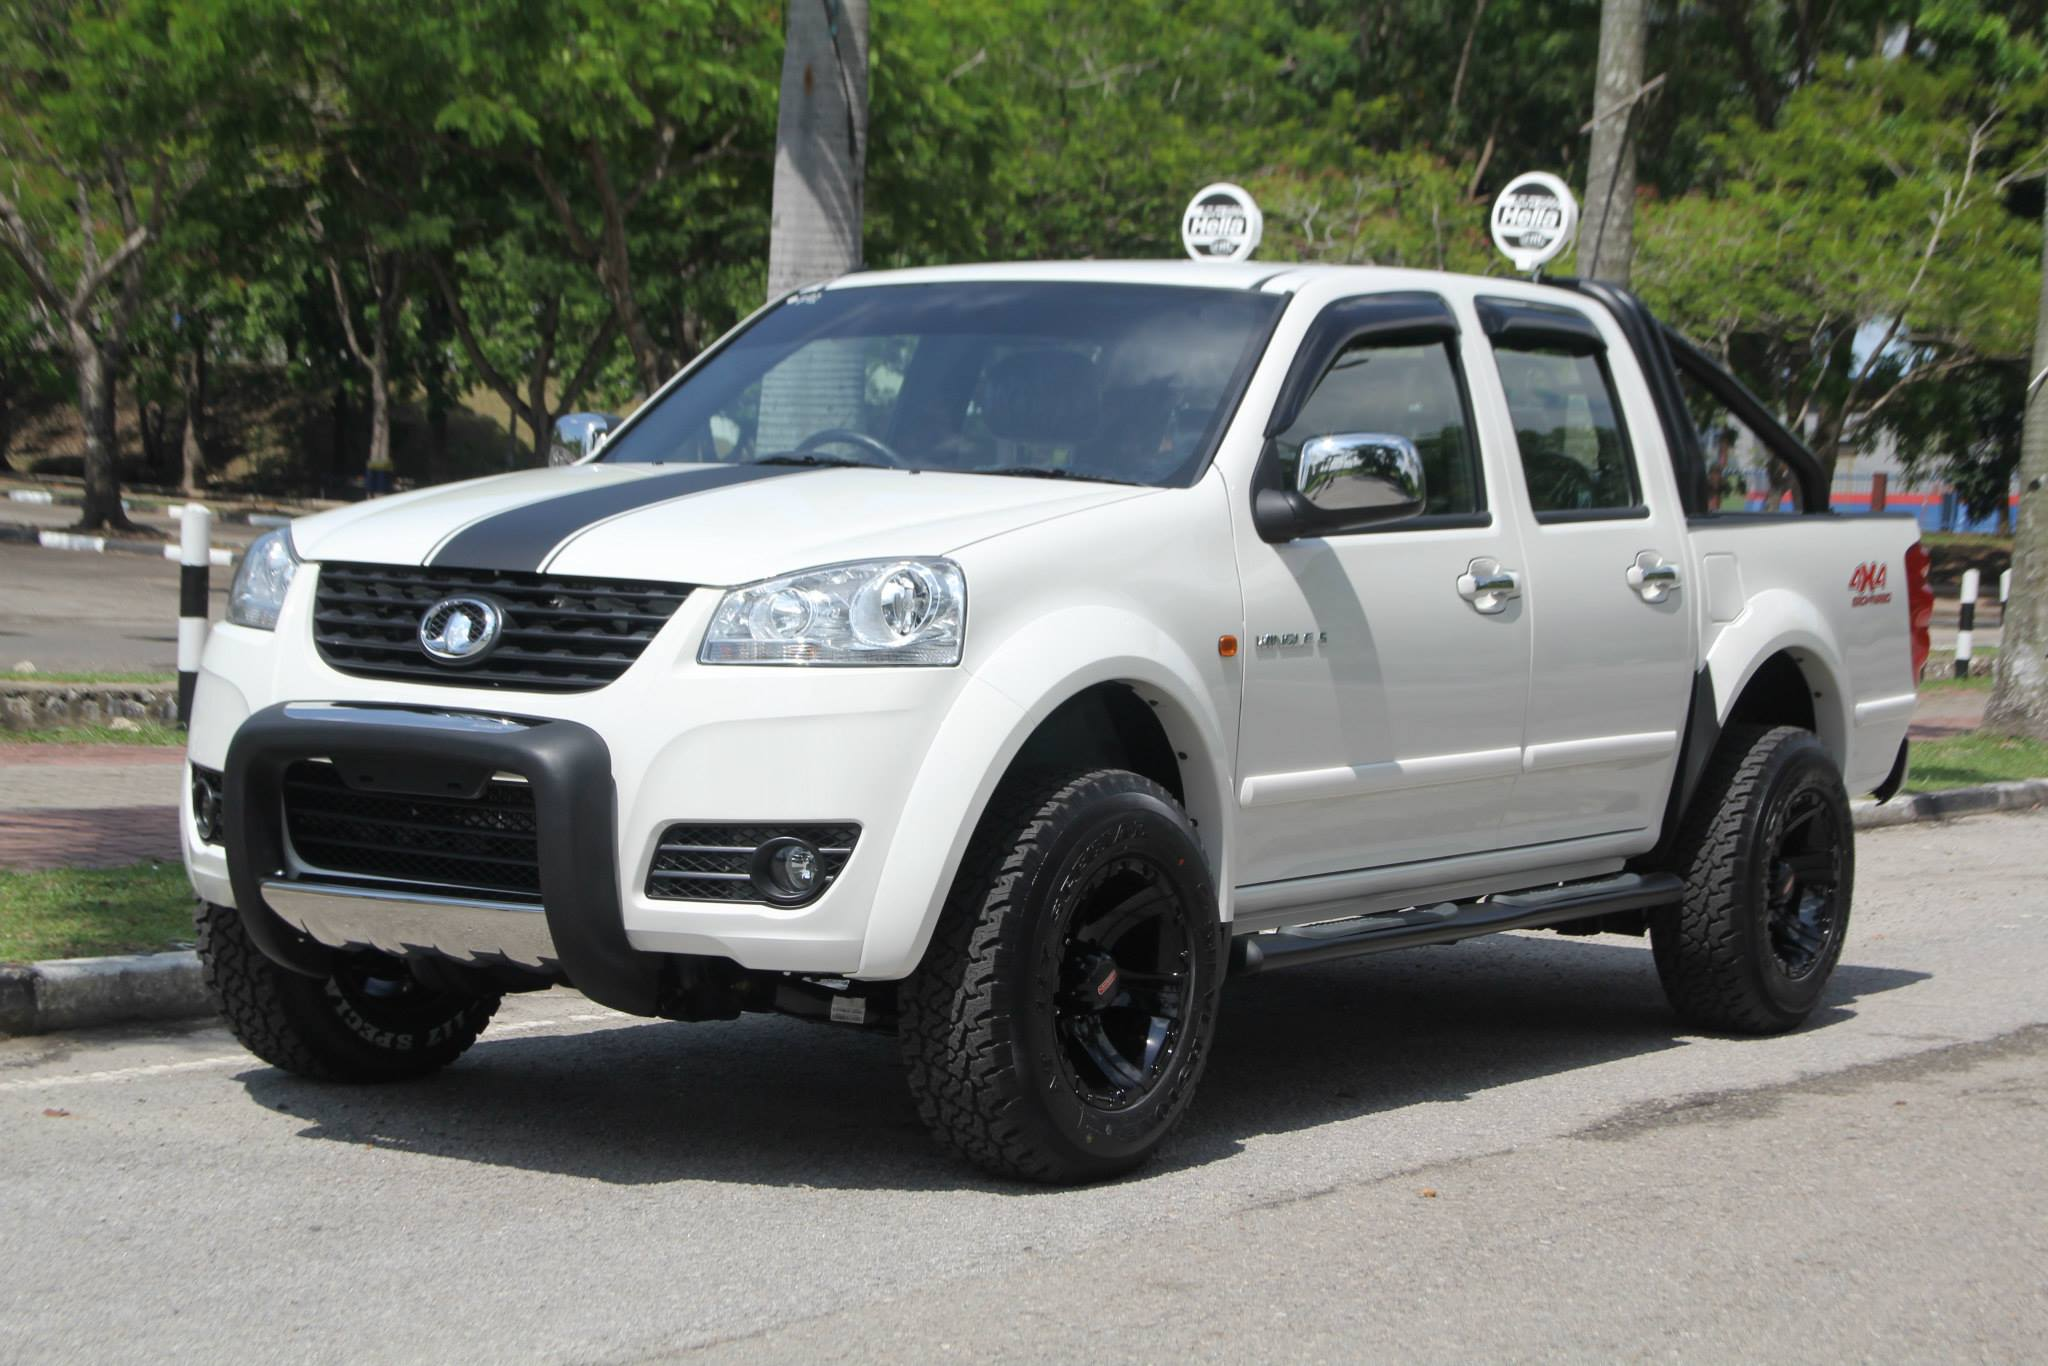 Launch 2013 Gwm Wingle 5 Premium X Starting From Rm72